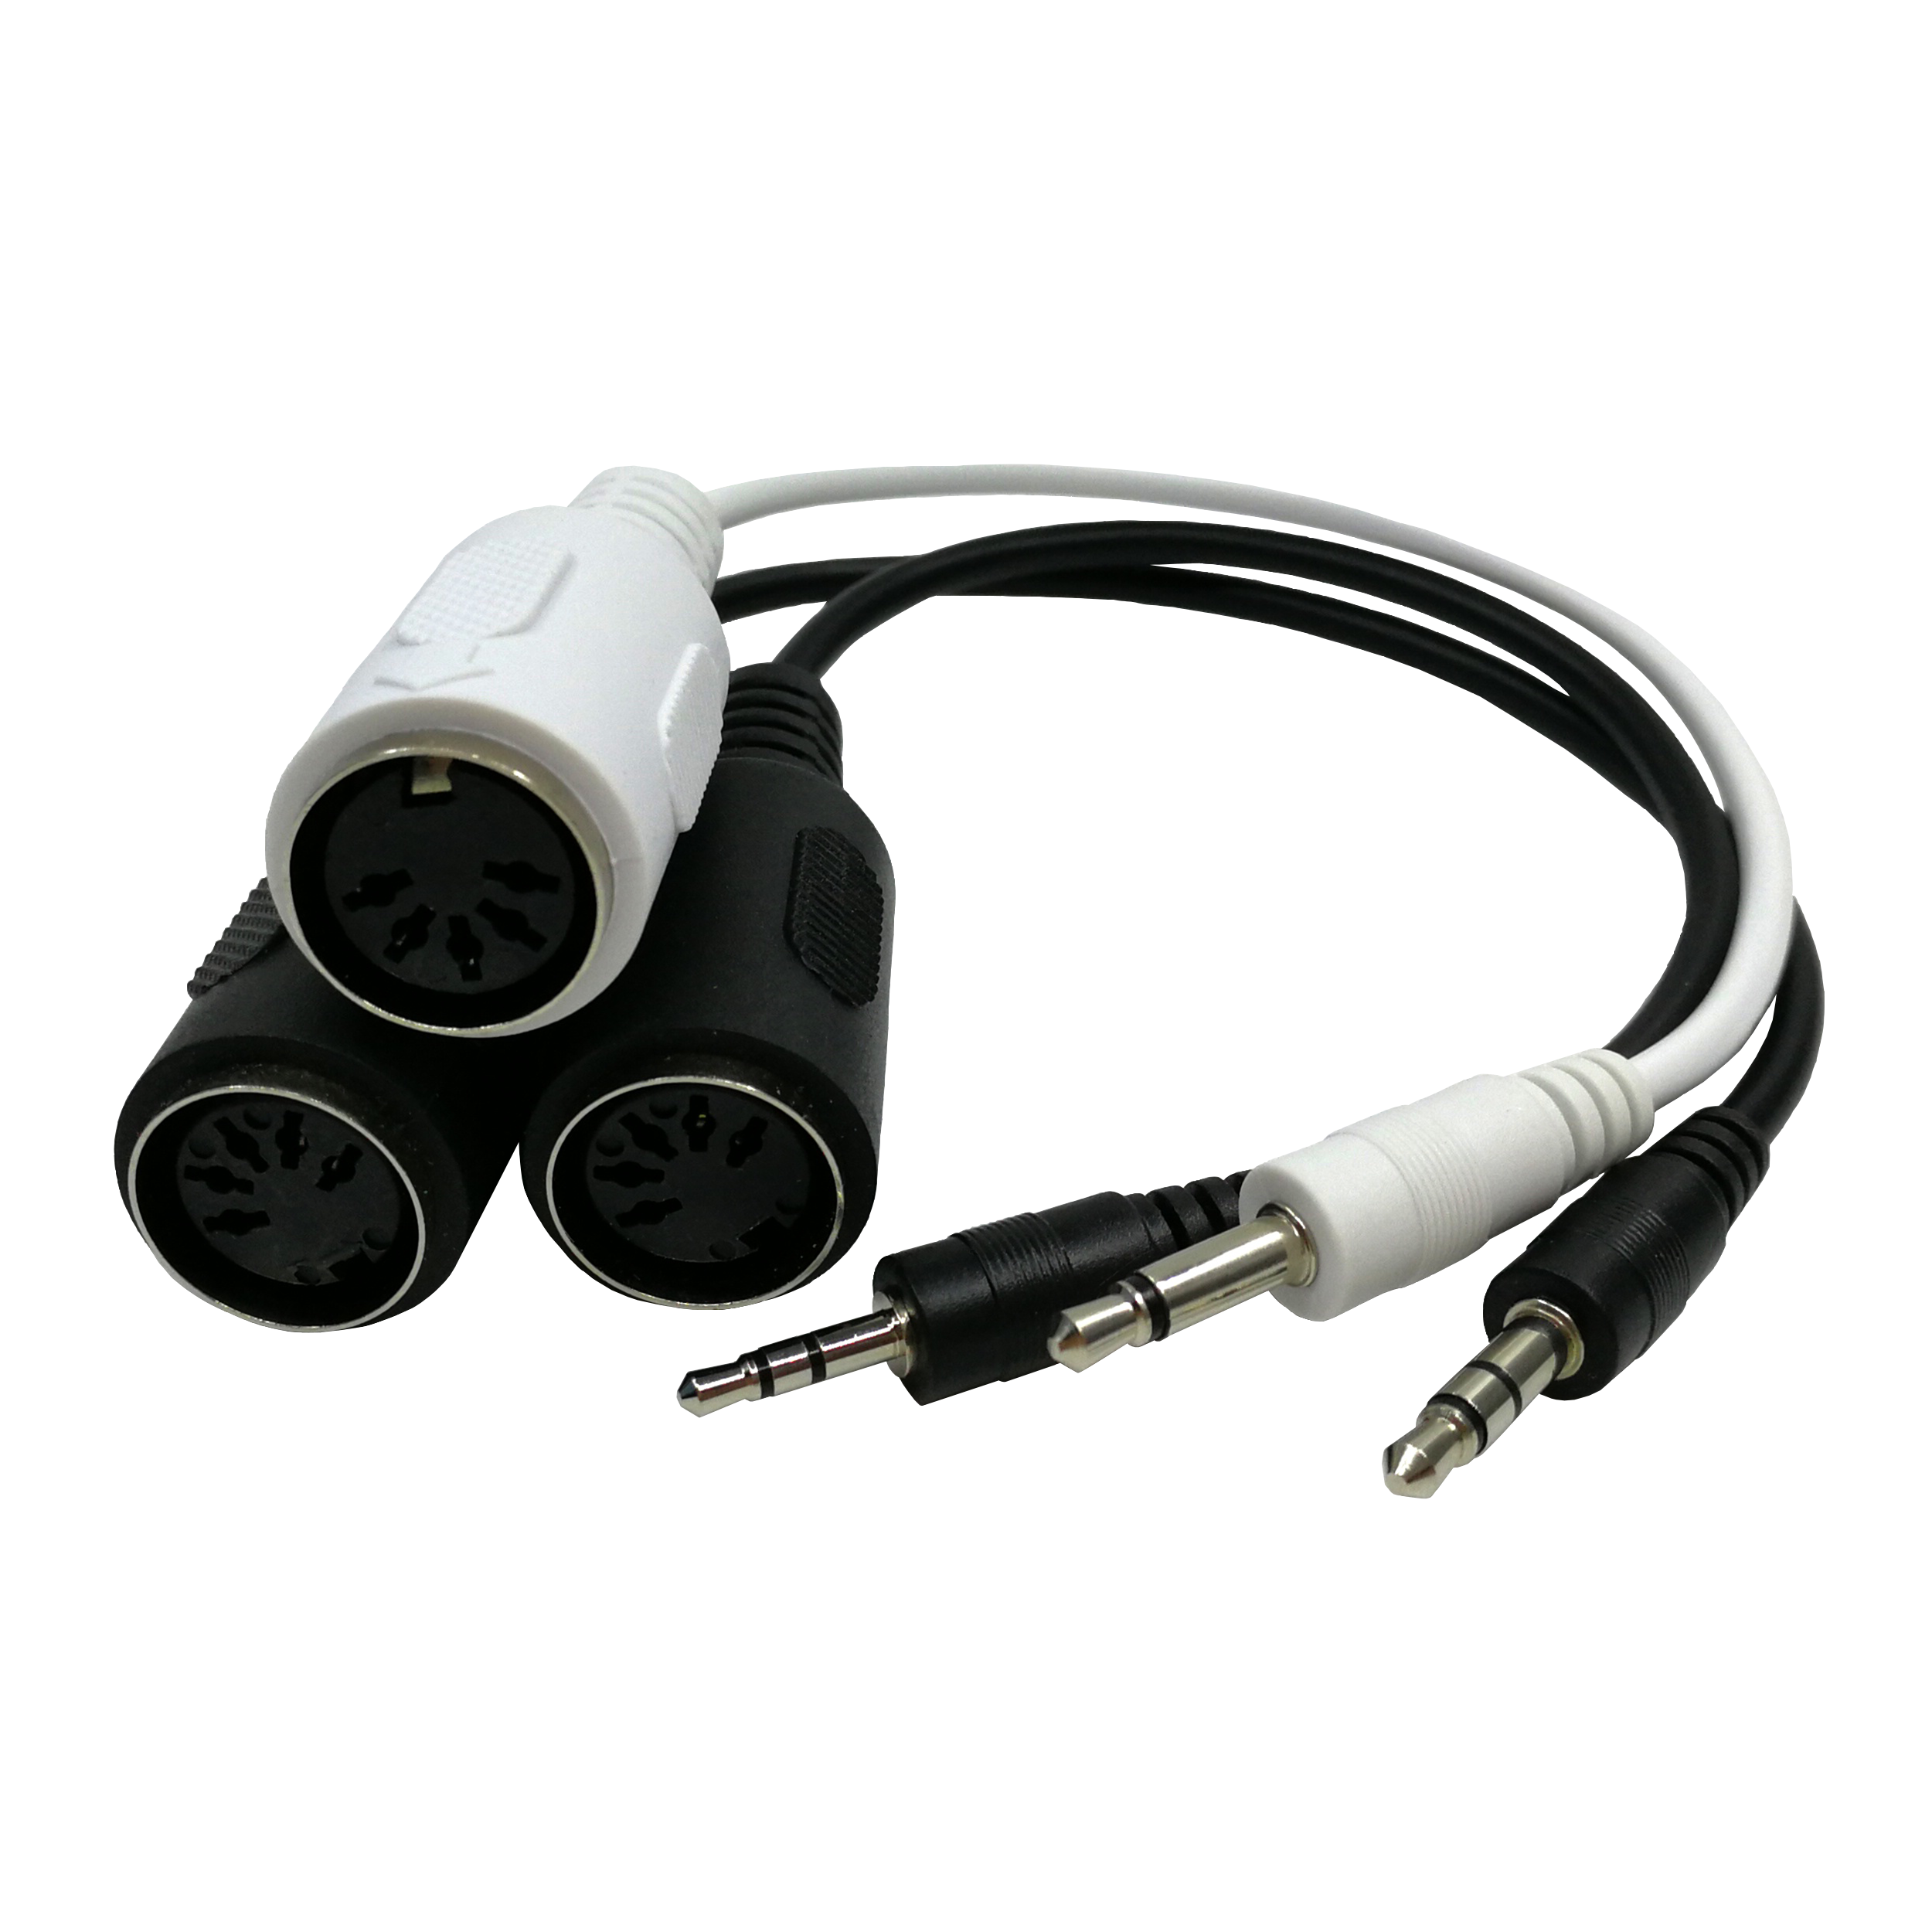 Excelvalley Midi Adapter Breakout Cables All Versions Available Usb To Trs Wiring Audio Jack Din Female Korg Arturia Akai